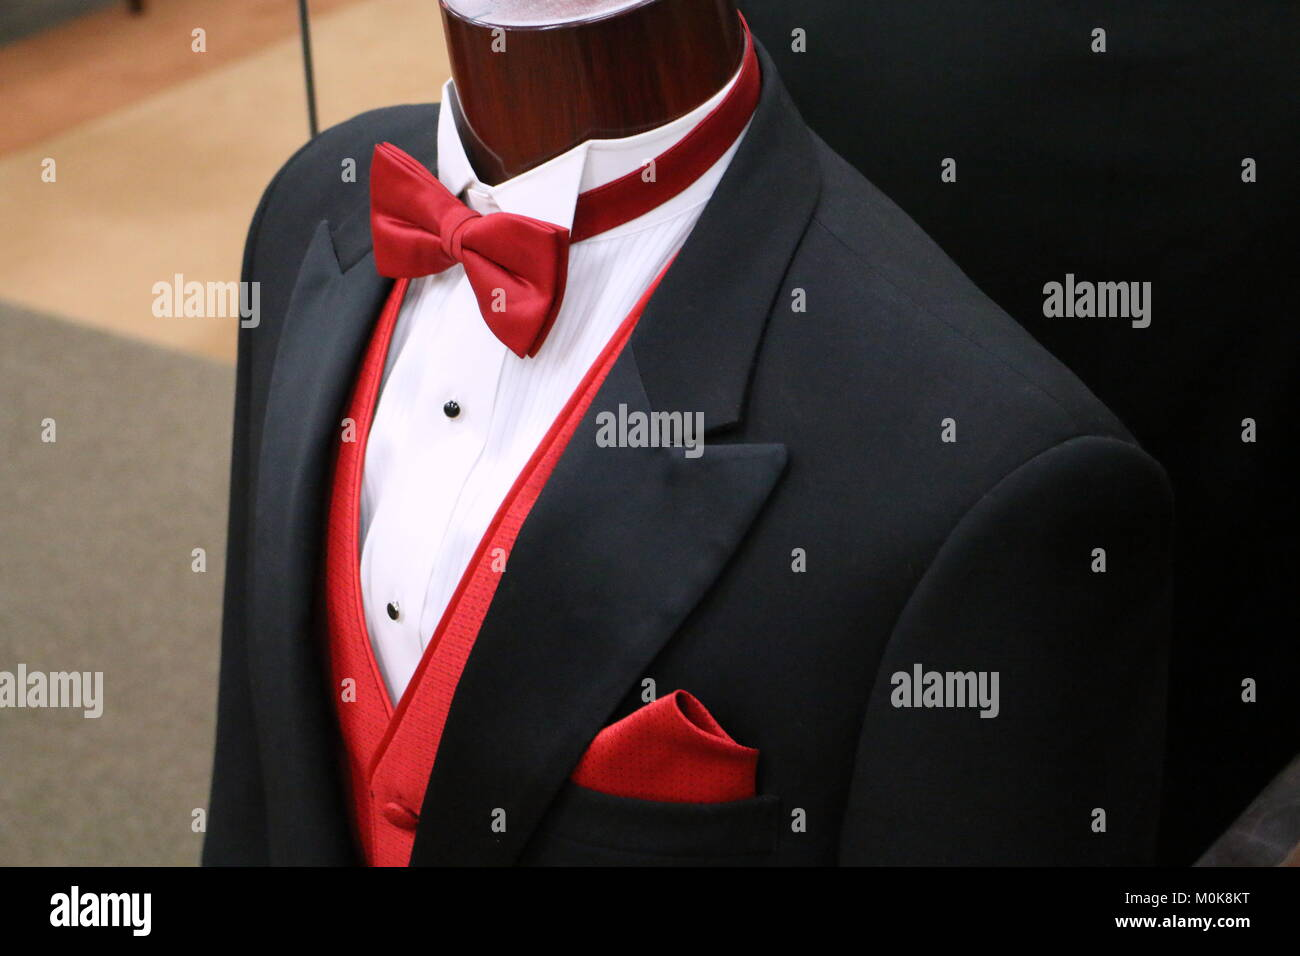 4a620ce78197 Black Tuxedo with Red Vest and Red Bow Tie Stock Photo: 172527596 ...